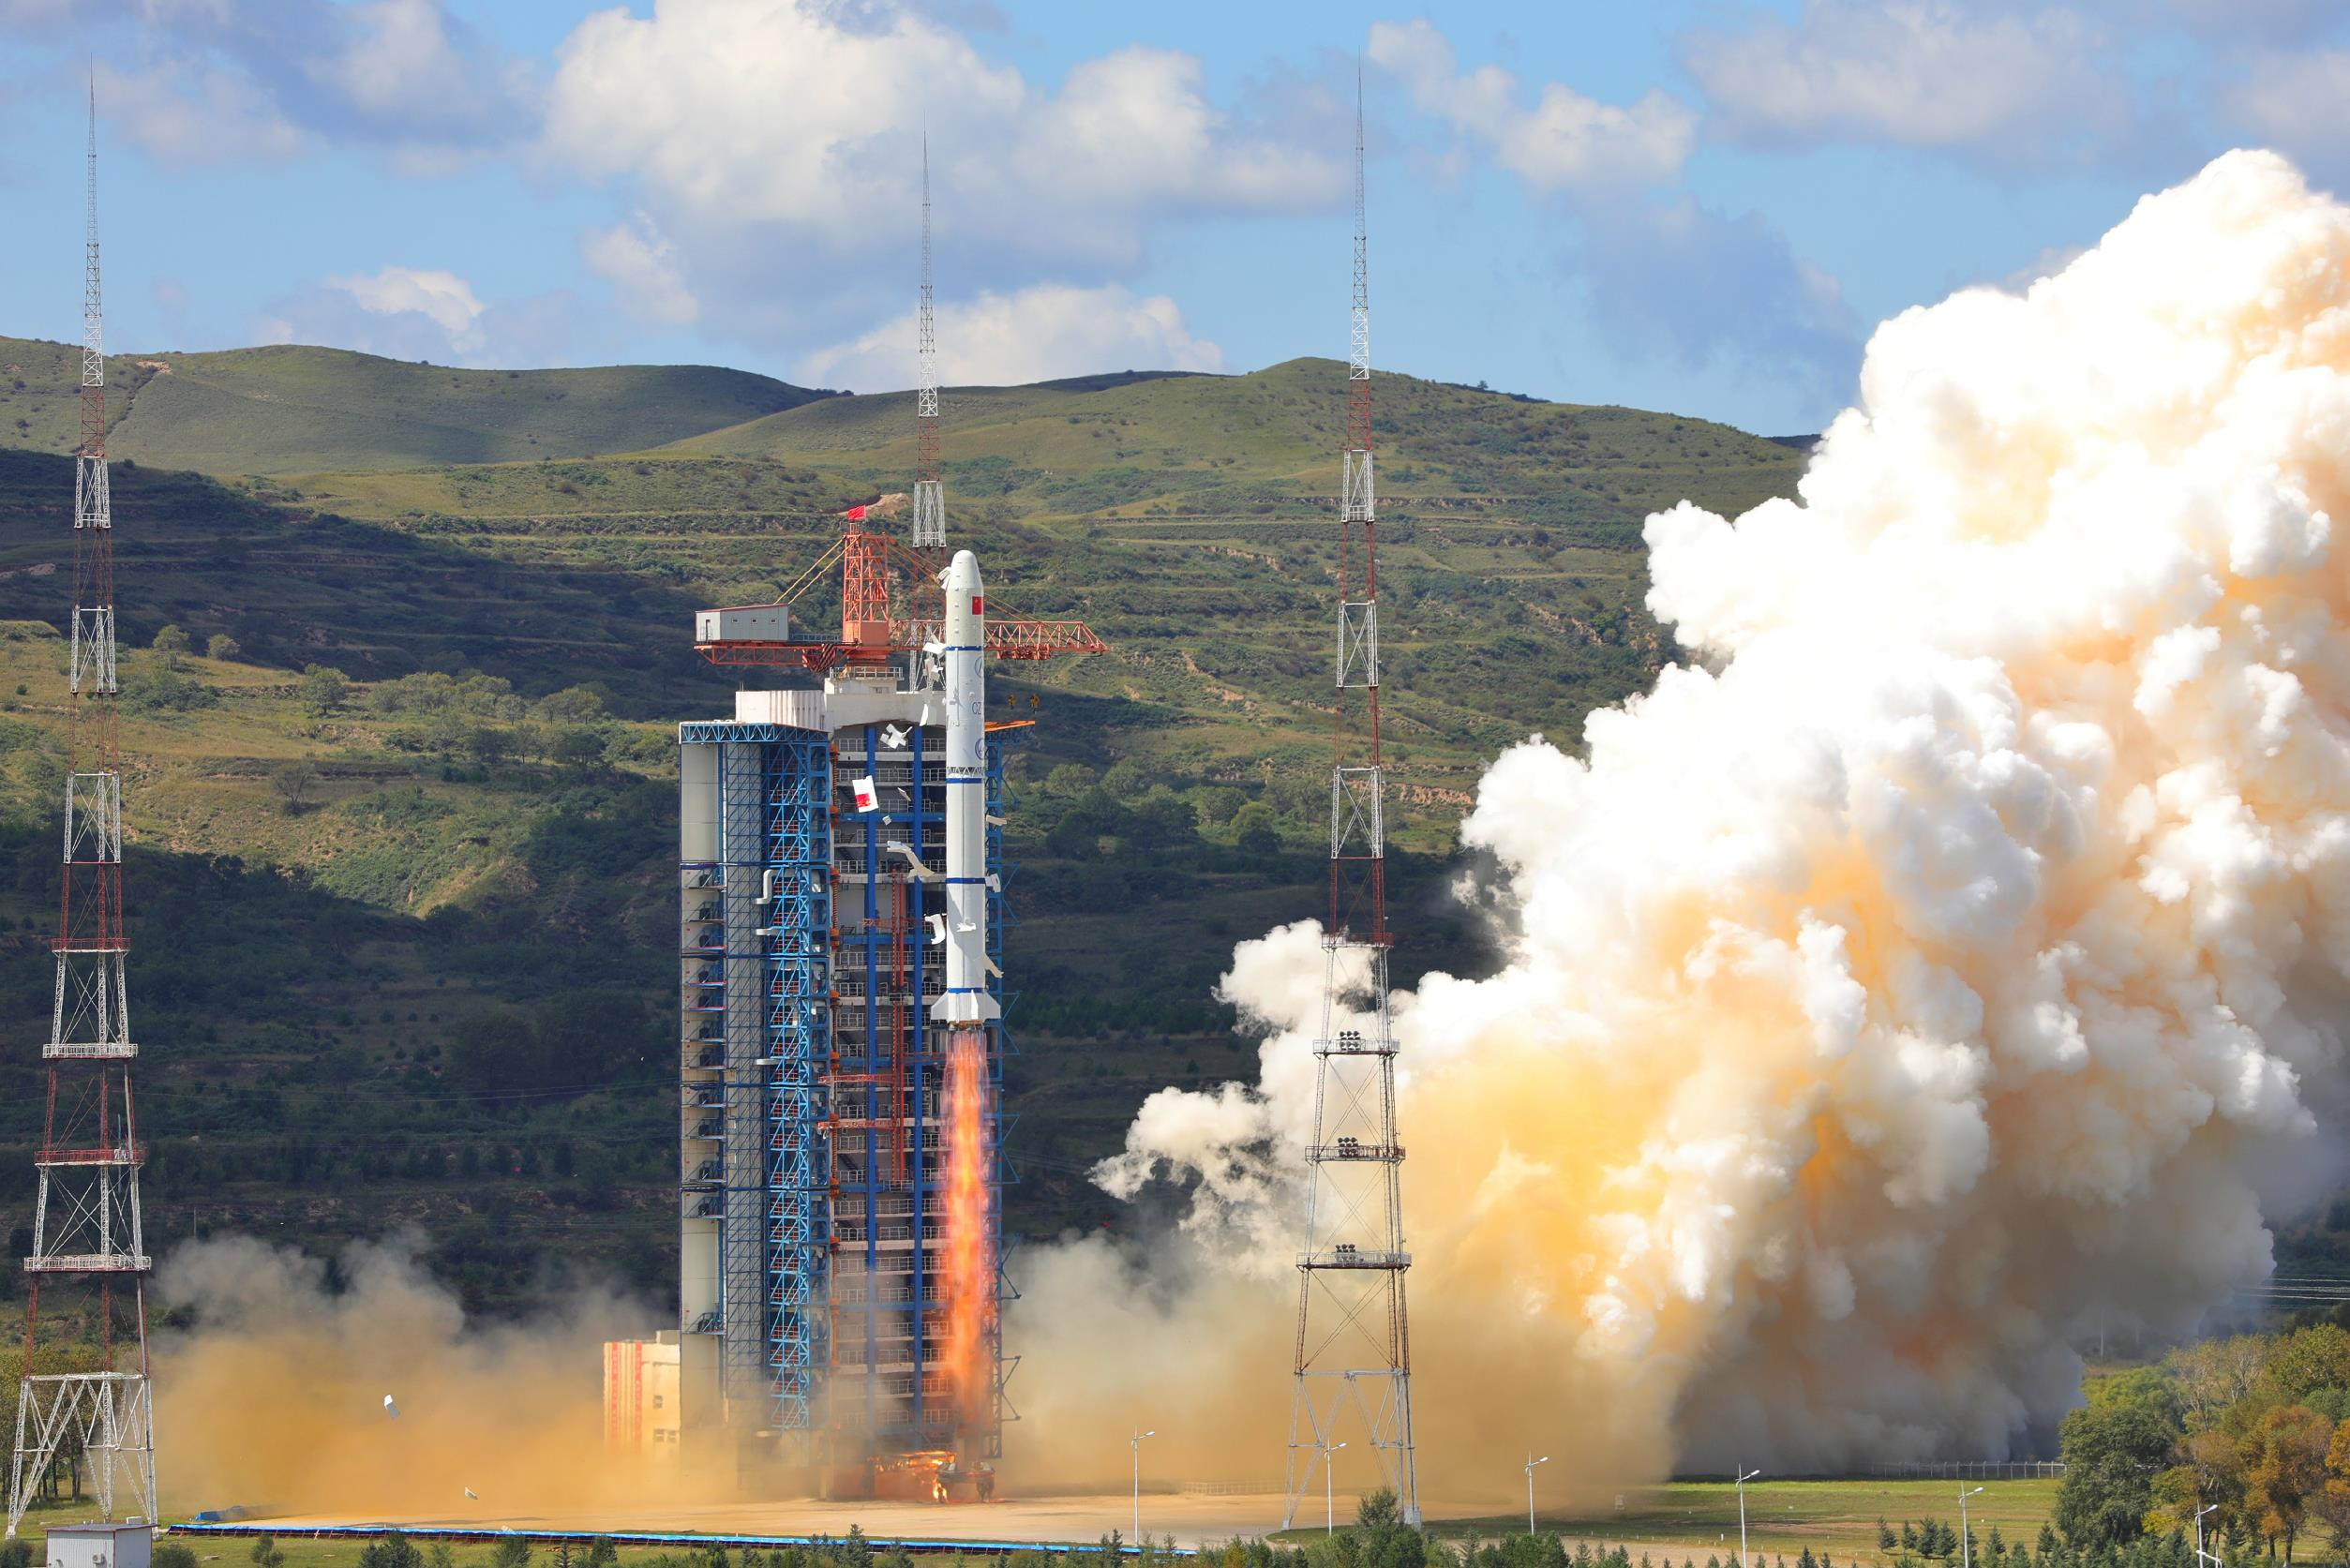 ... the Haiyang-1 series on Friday, with the launch taking place from the  Taiyuan Satellite Launching Center at 03:15 UTC. A Long March-2C (Chang  Zheng-2C) ...